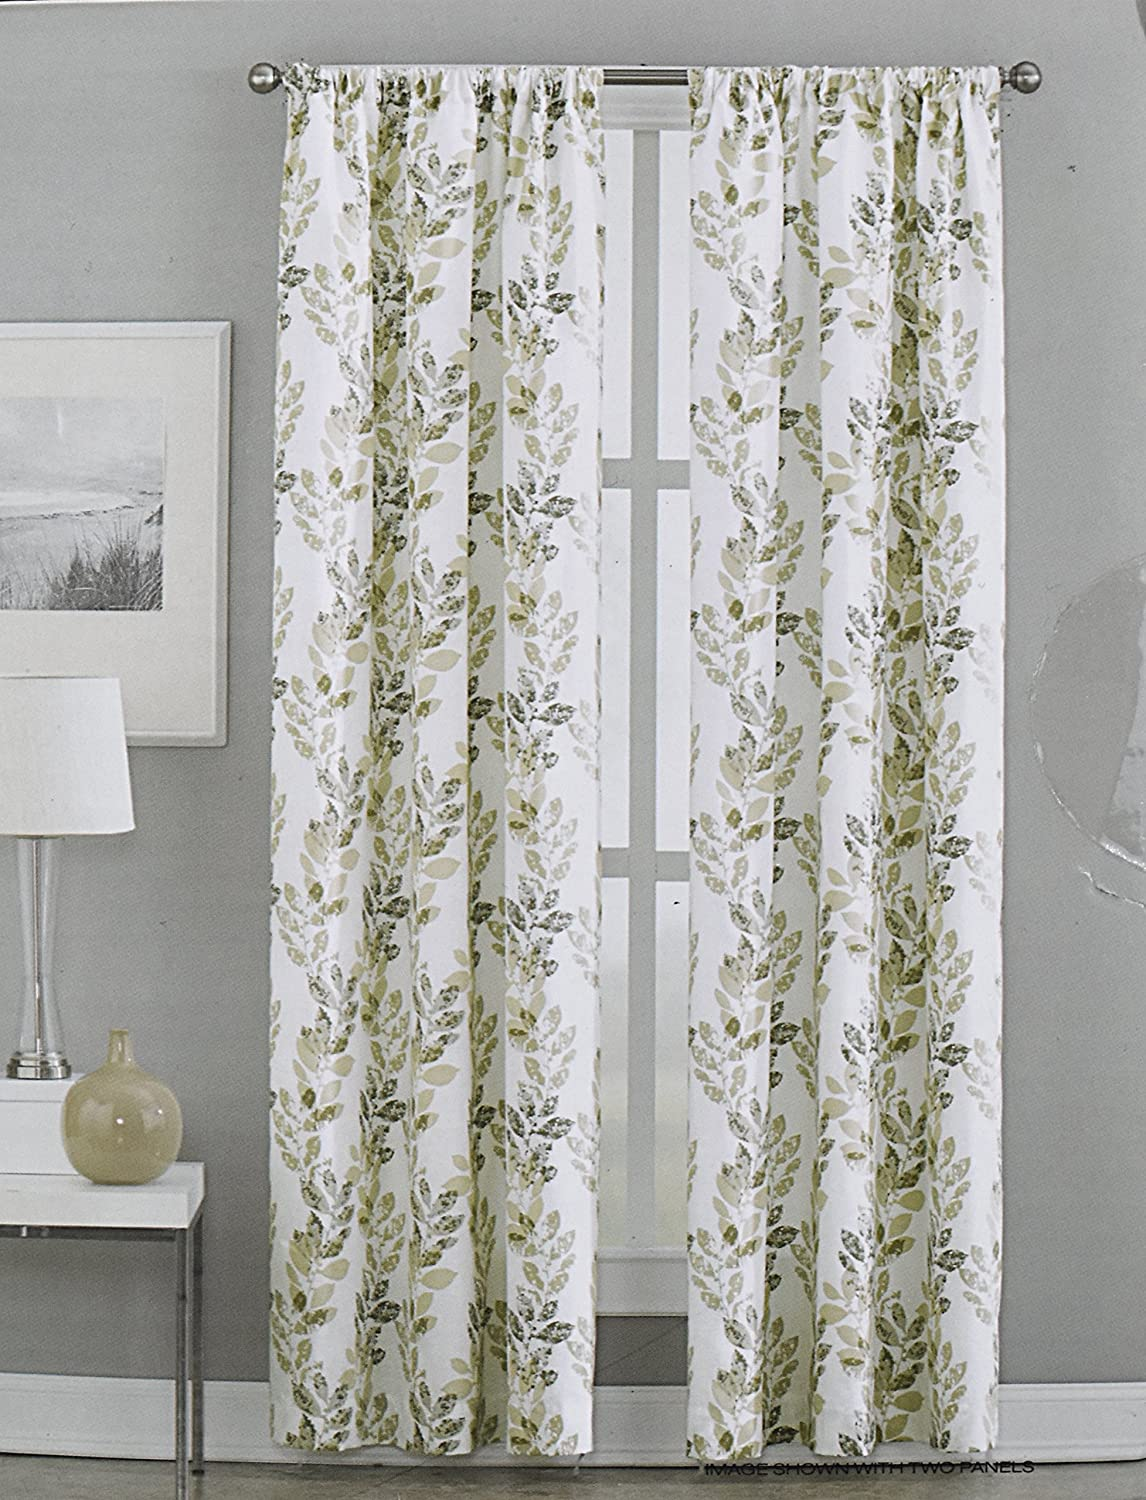 linen pinterest and faux embroidered sheer floral size net x polyester on creative danaleidholm overstock images inch curtains blinds exclusive eff vine best curtain grey